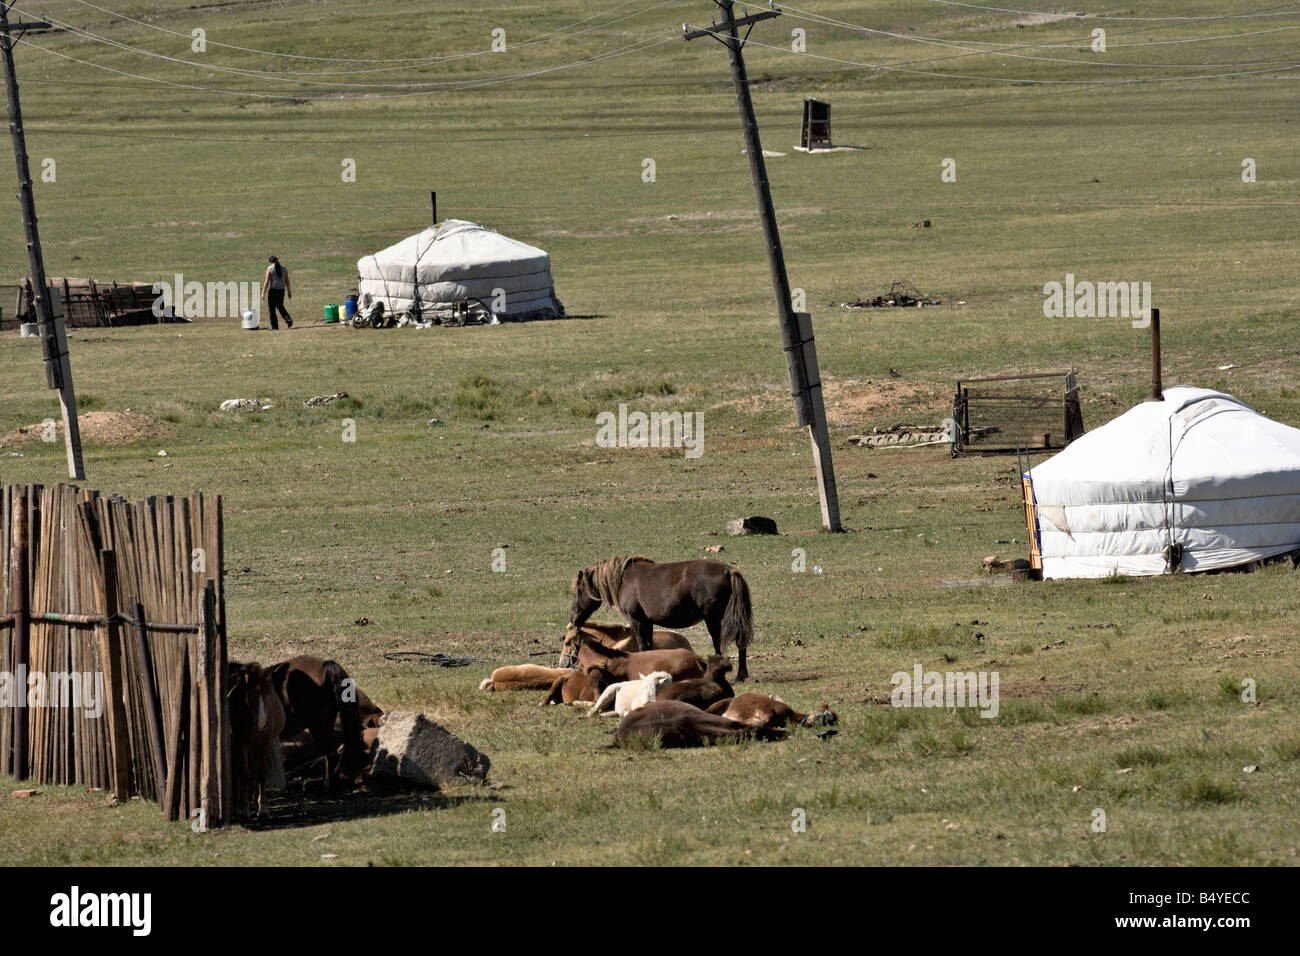 Mongolian gers (yurts), horses, and power line, Mongolia Stock Photo